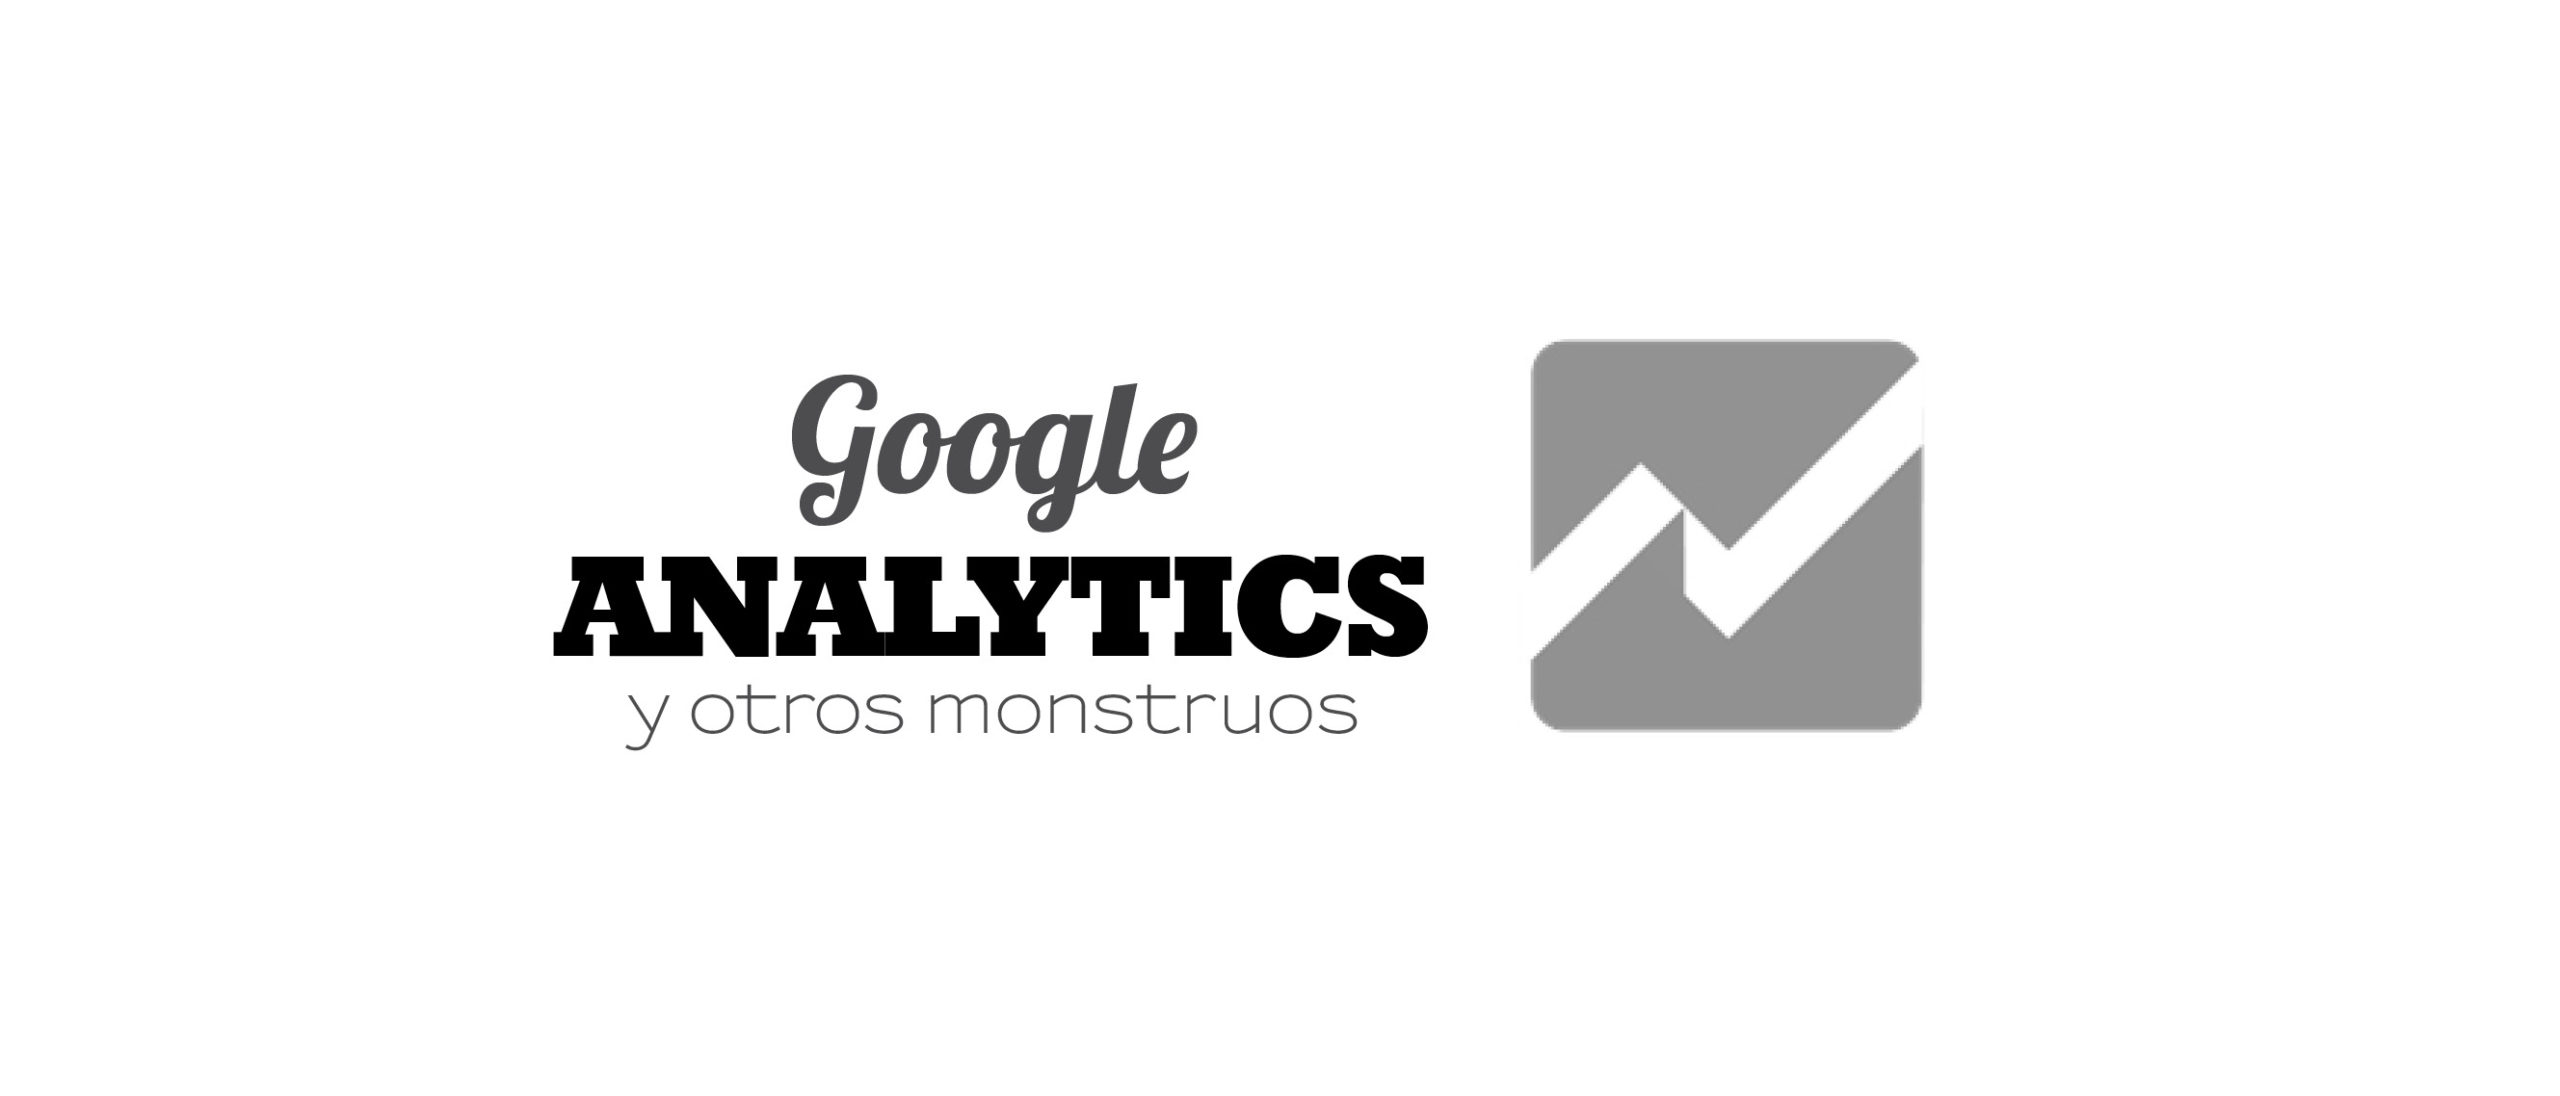 Google Analytics y otros monstruos